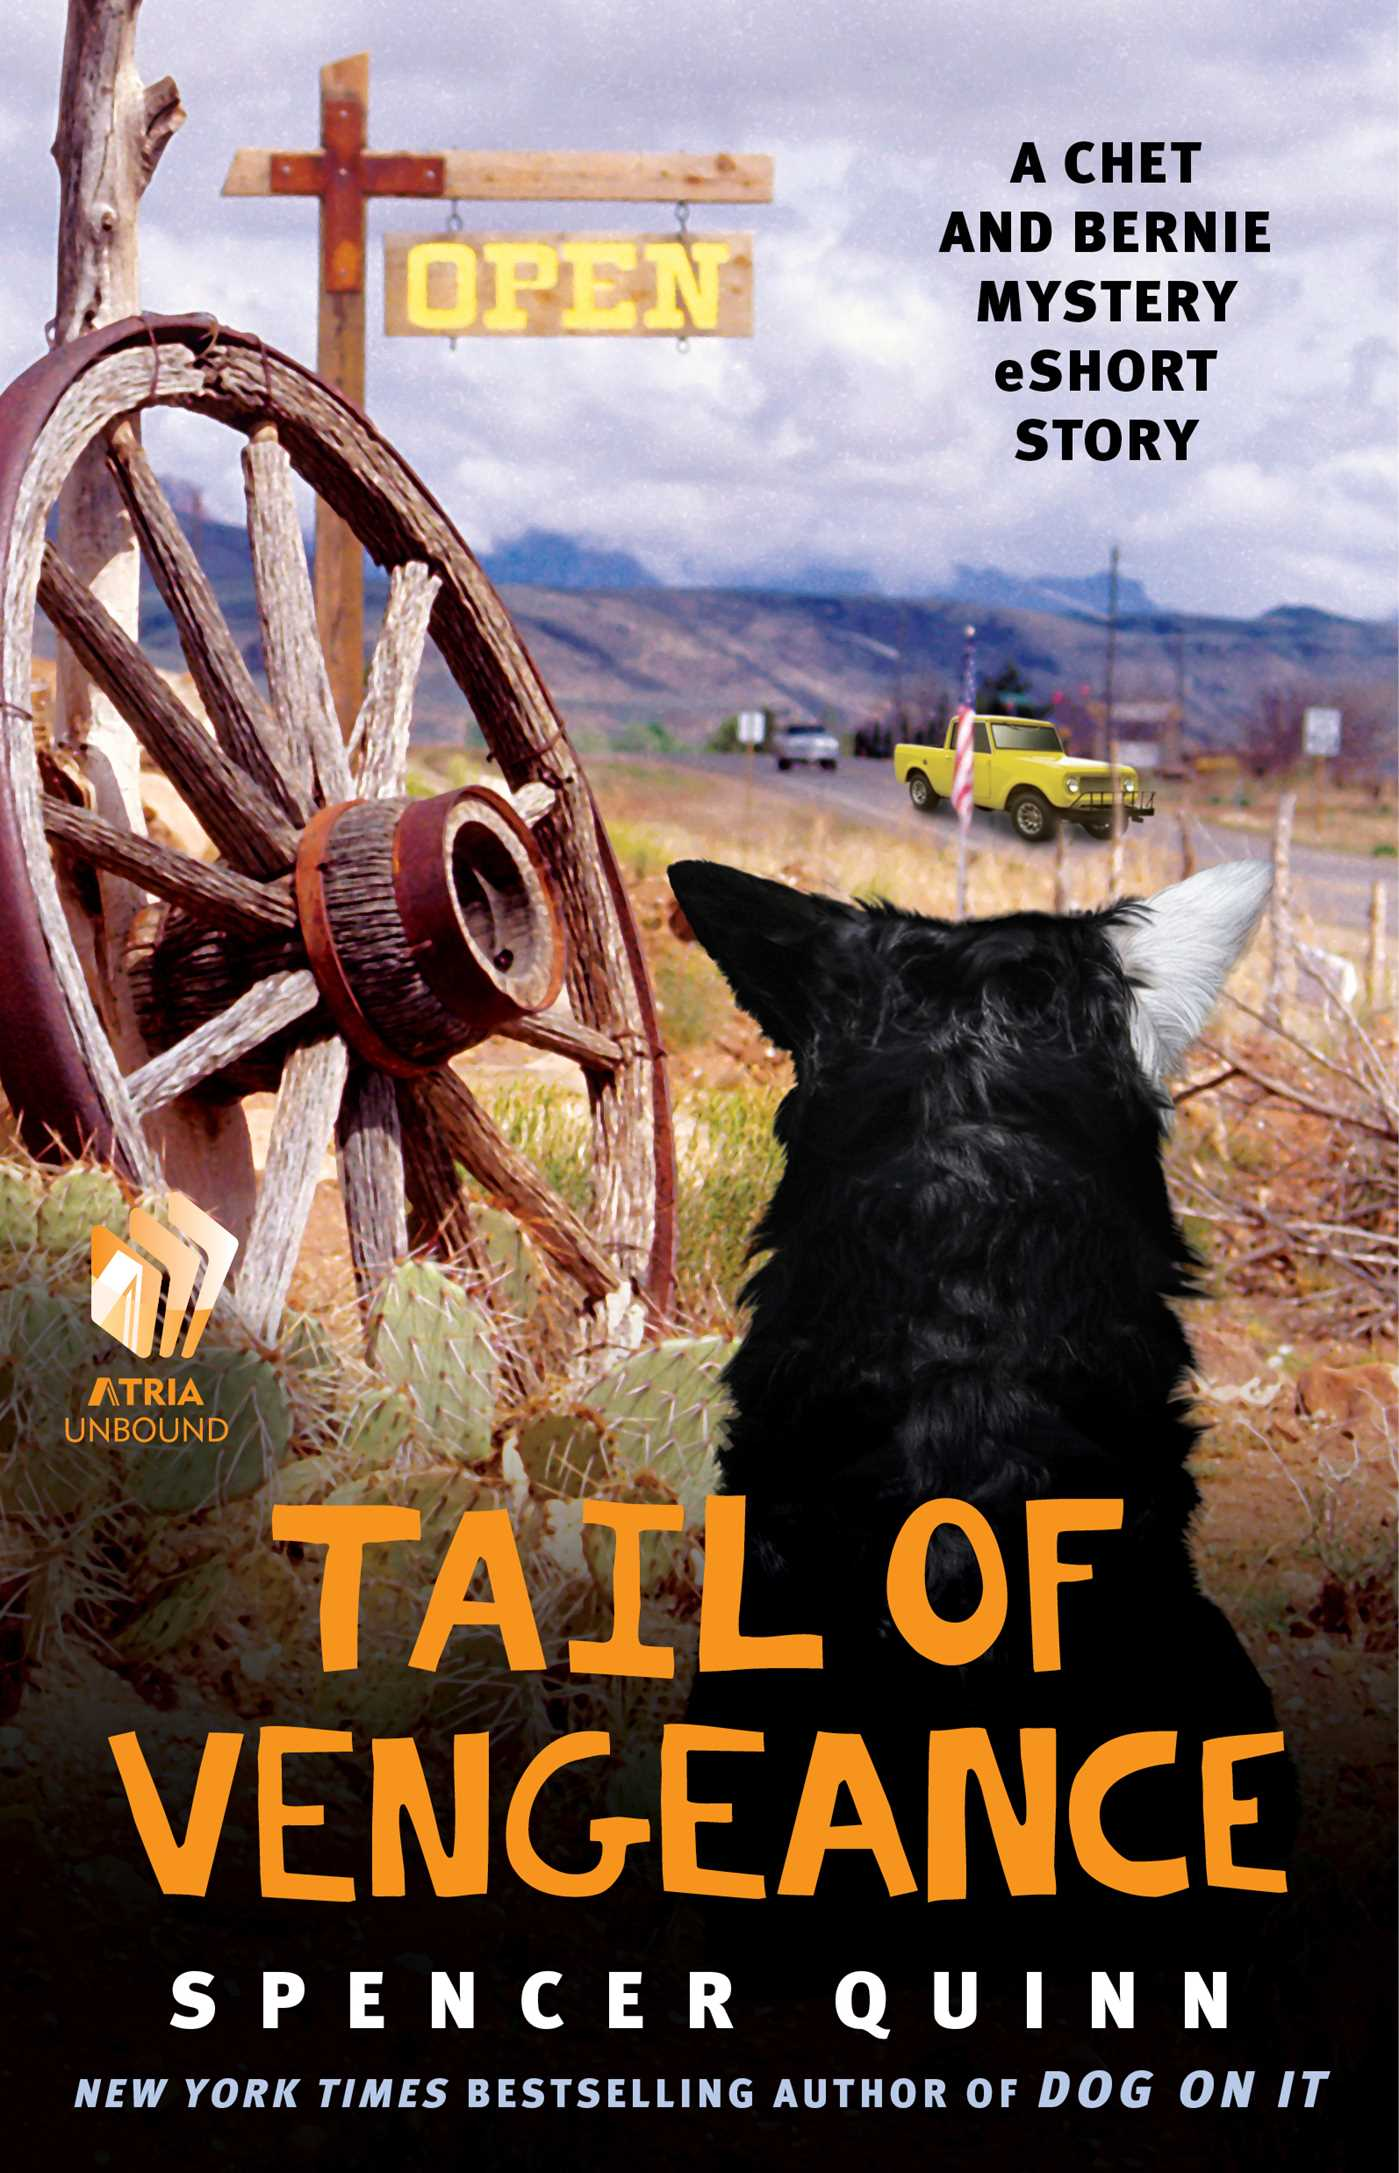 Tail of vengeance 9781476703633 hr